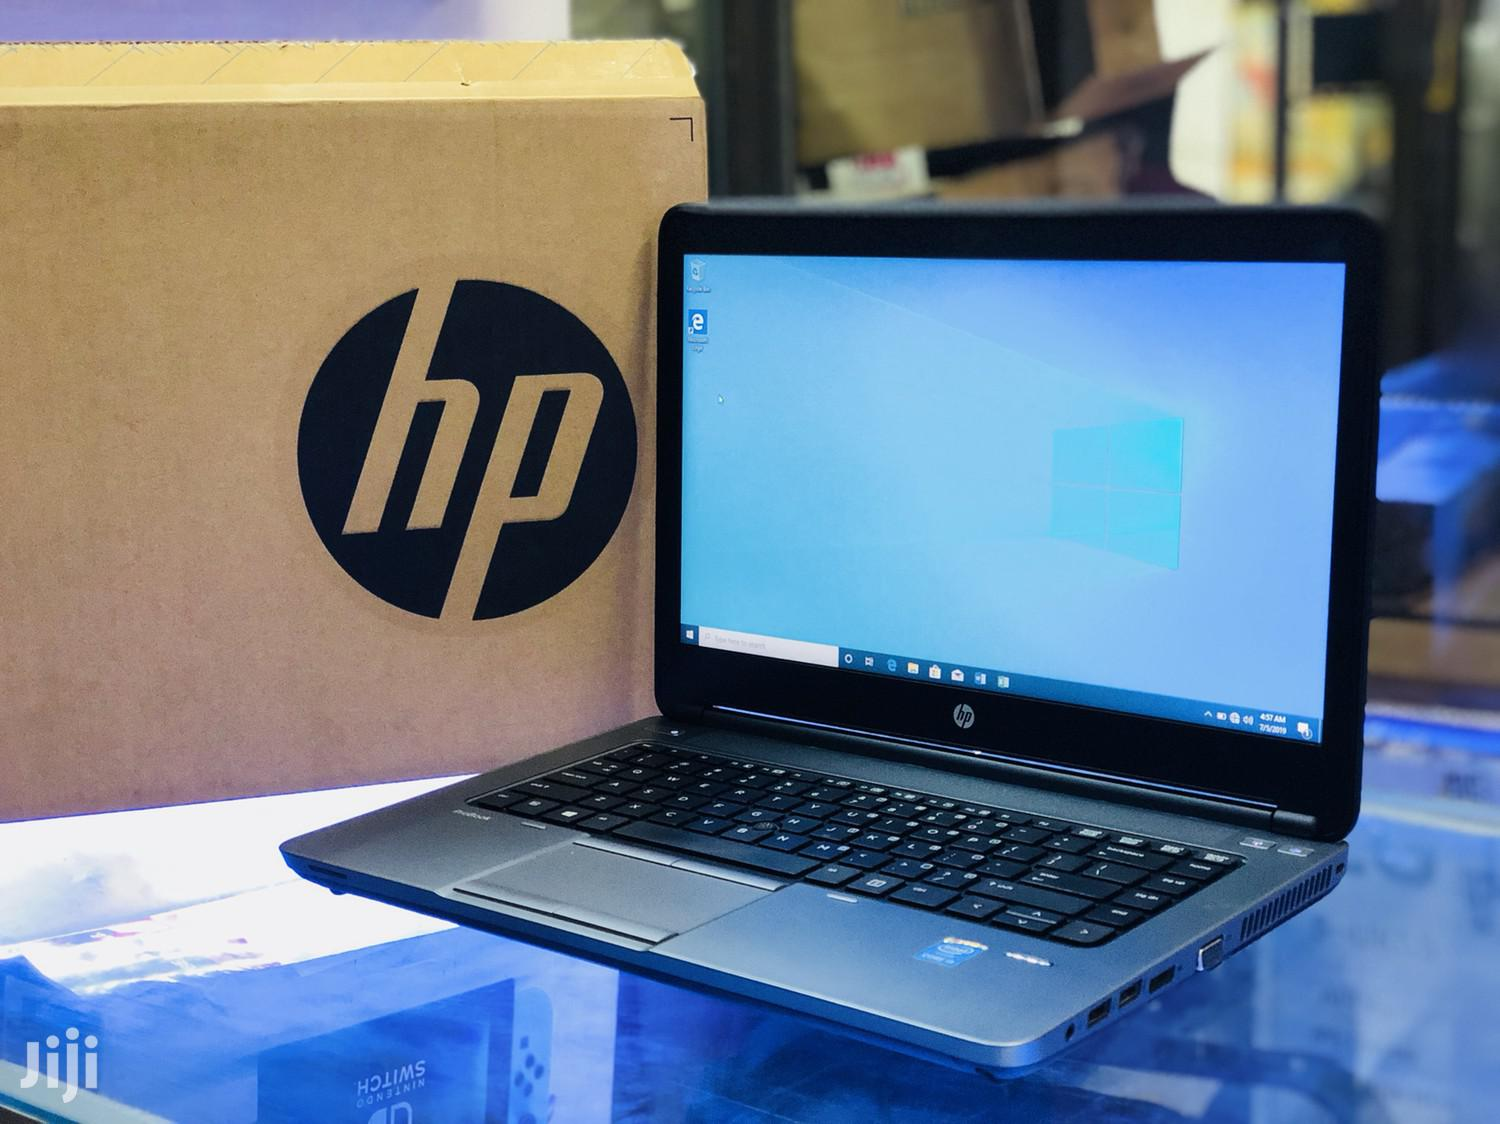 Archive: HP Probook 640 Core I5 4th Gen 14 Inch Display 500GB HDD 8GB Ram